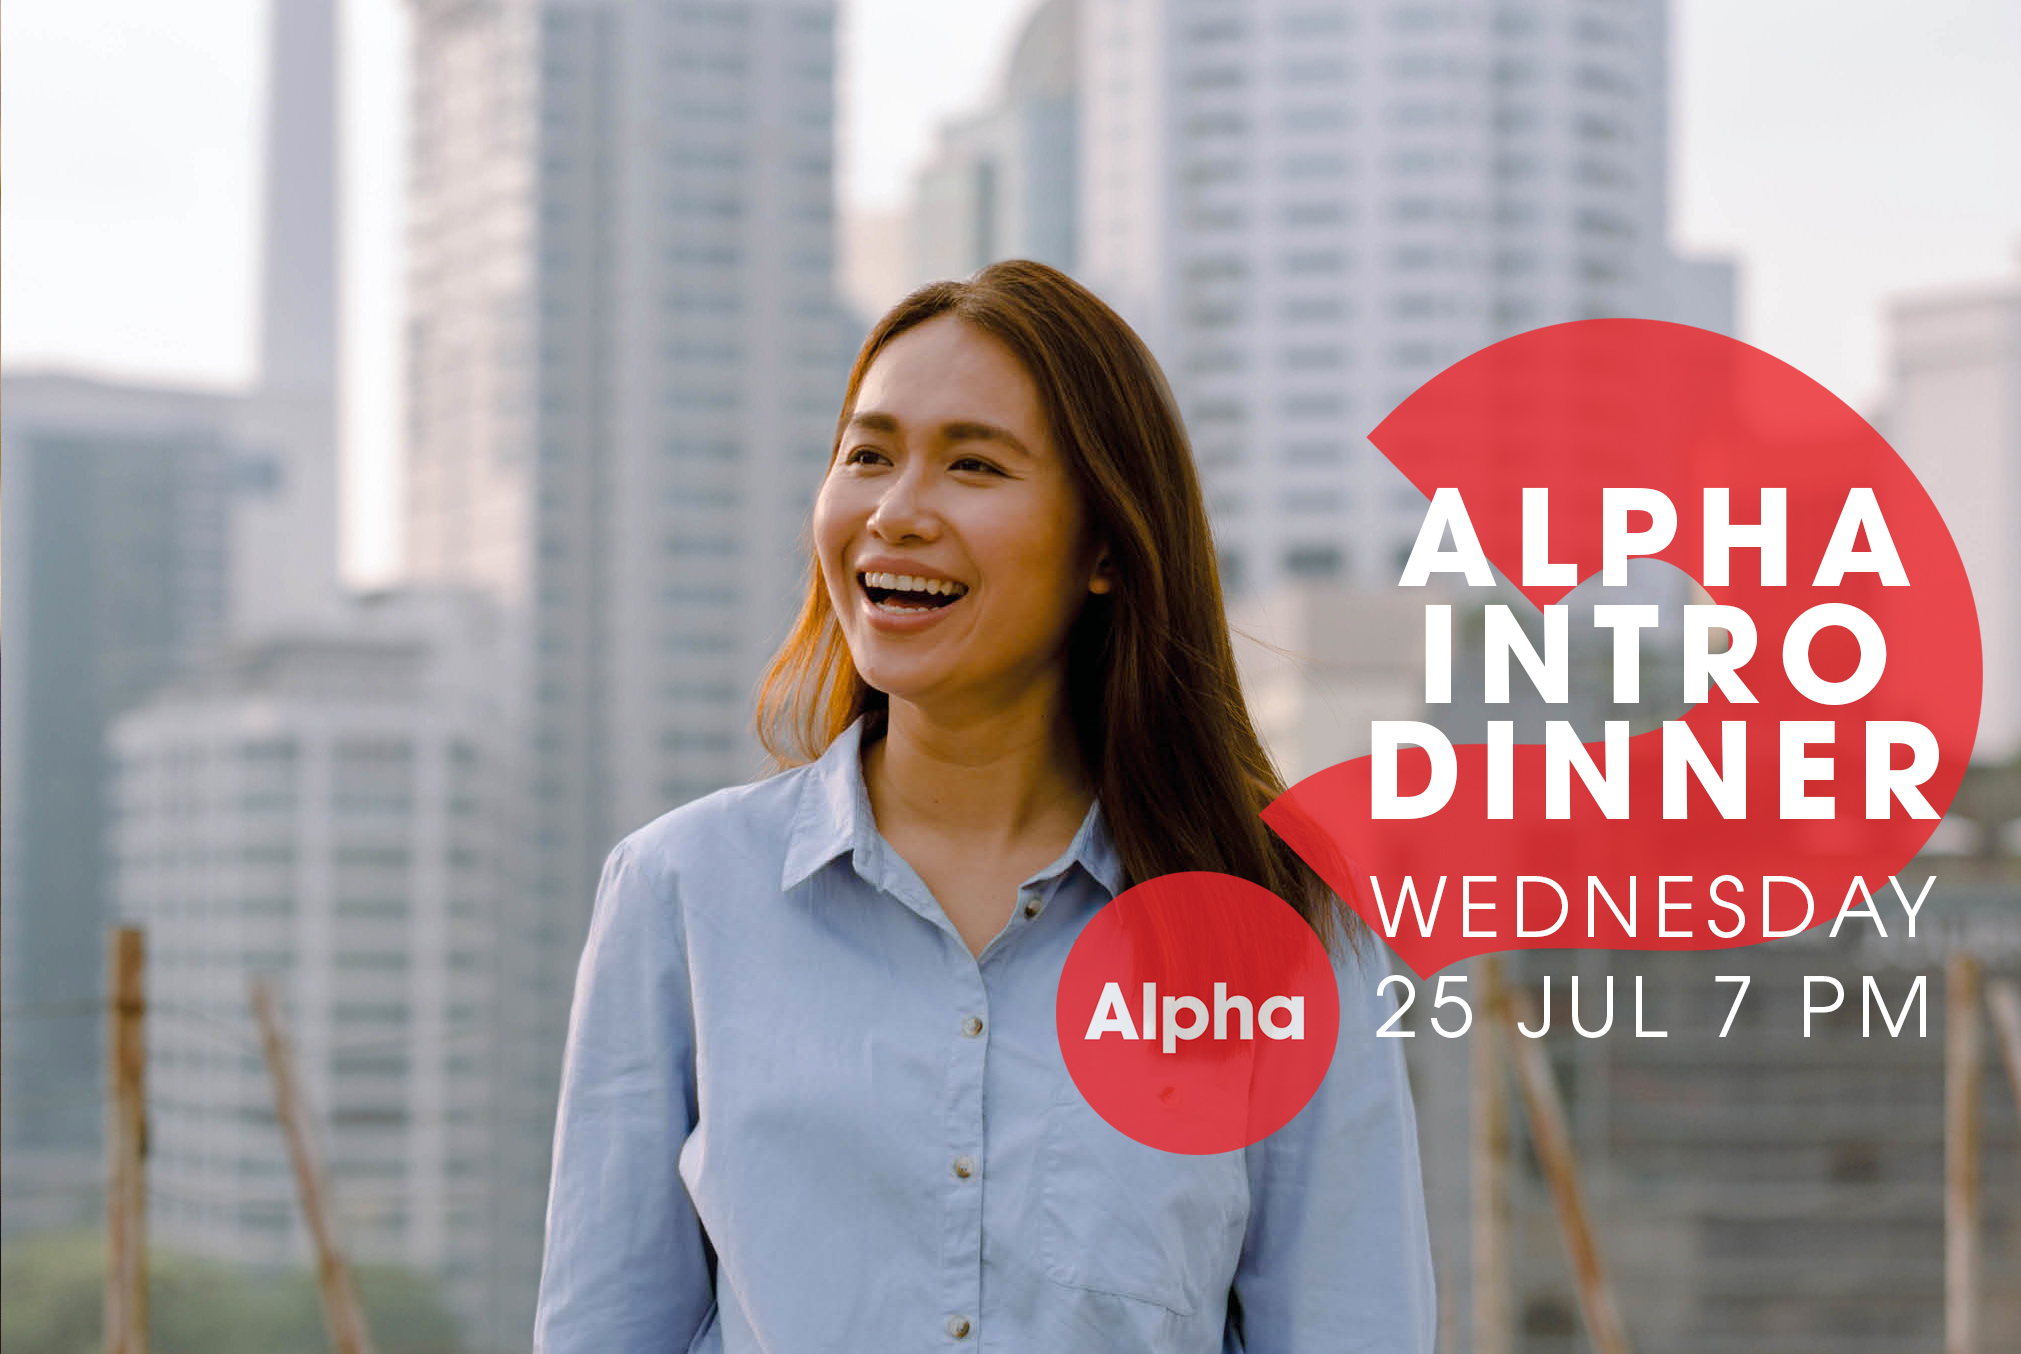 Alpha @ Cathedral